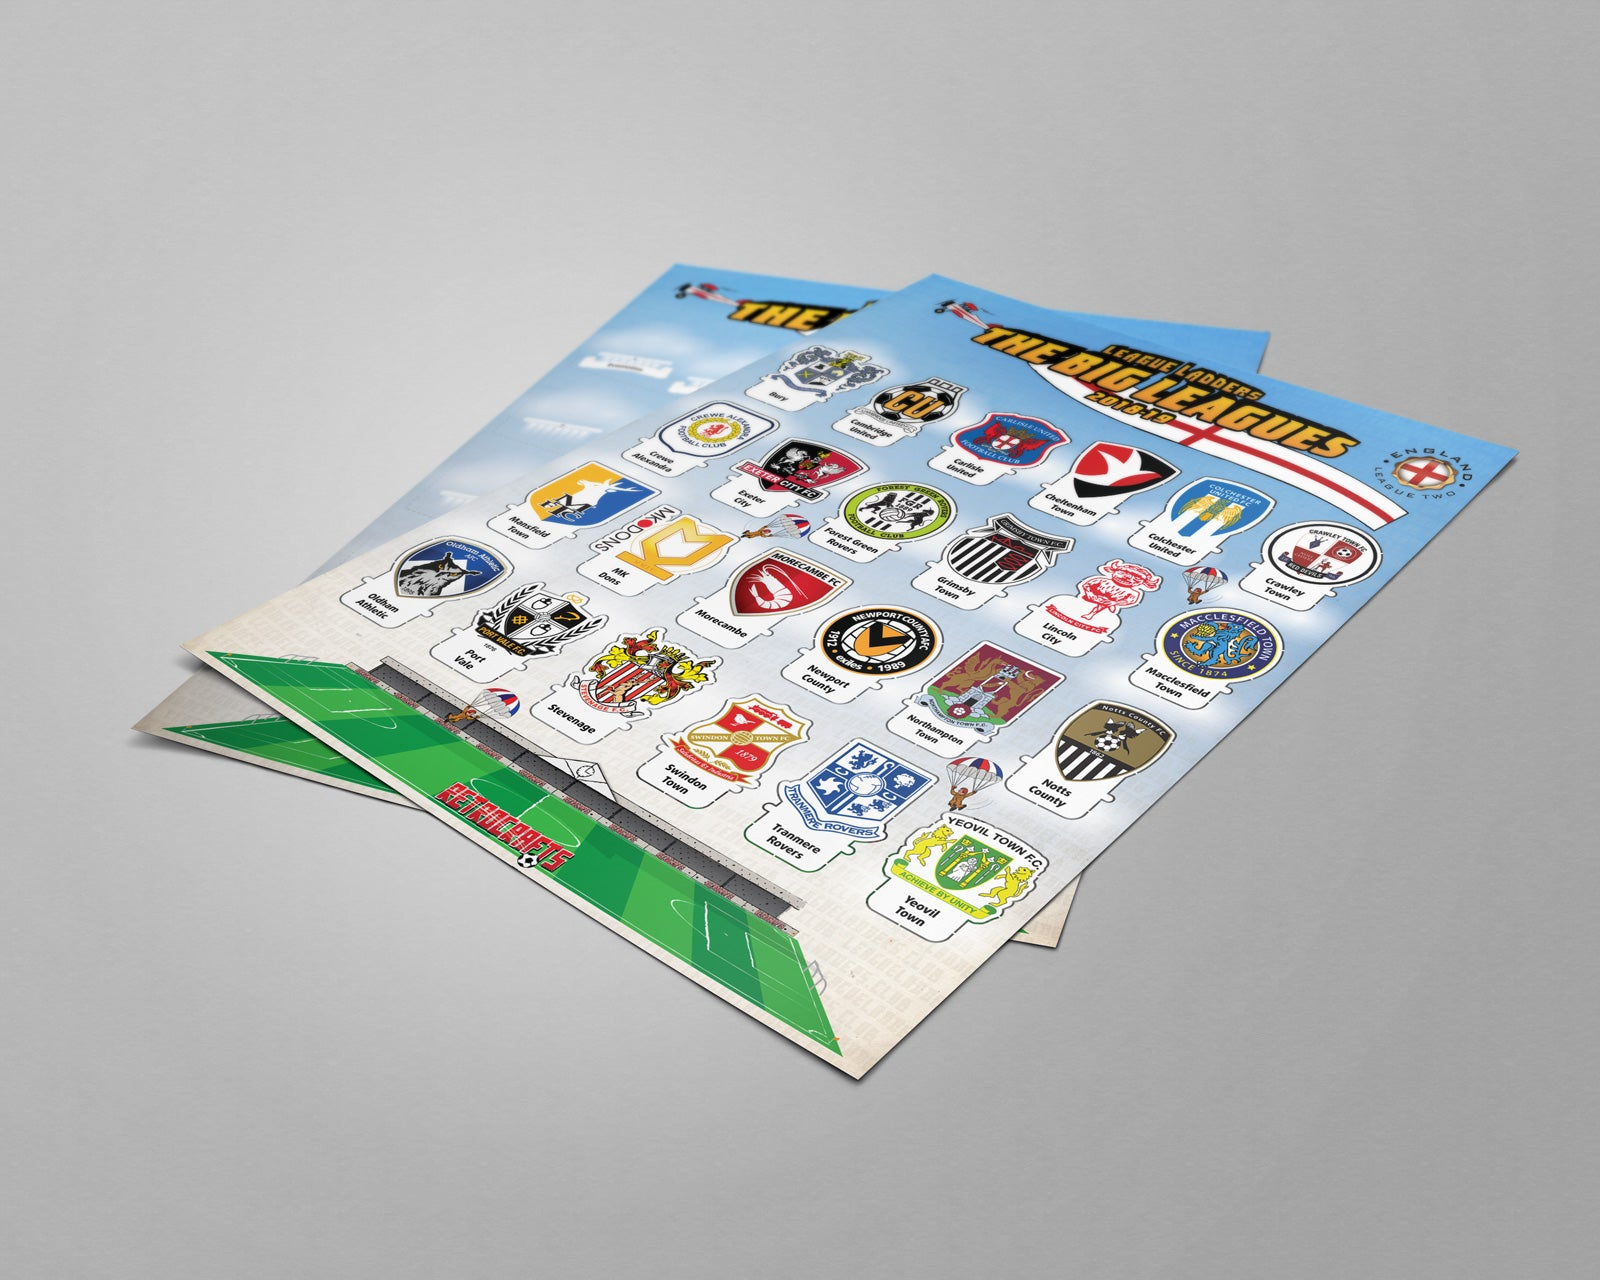 League Ladders - The BIG Leagues! English Football League Tiers 1-4 2018/2019